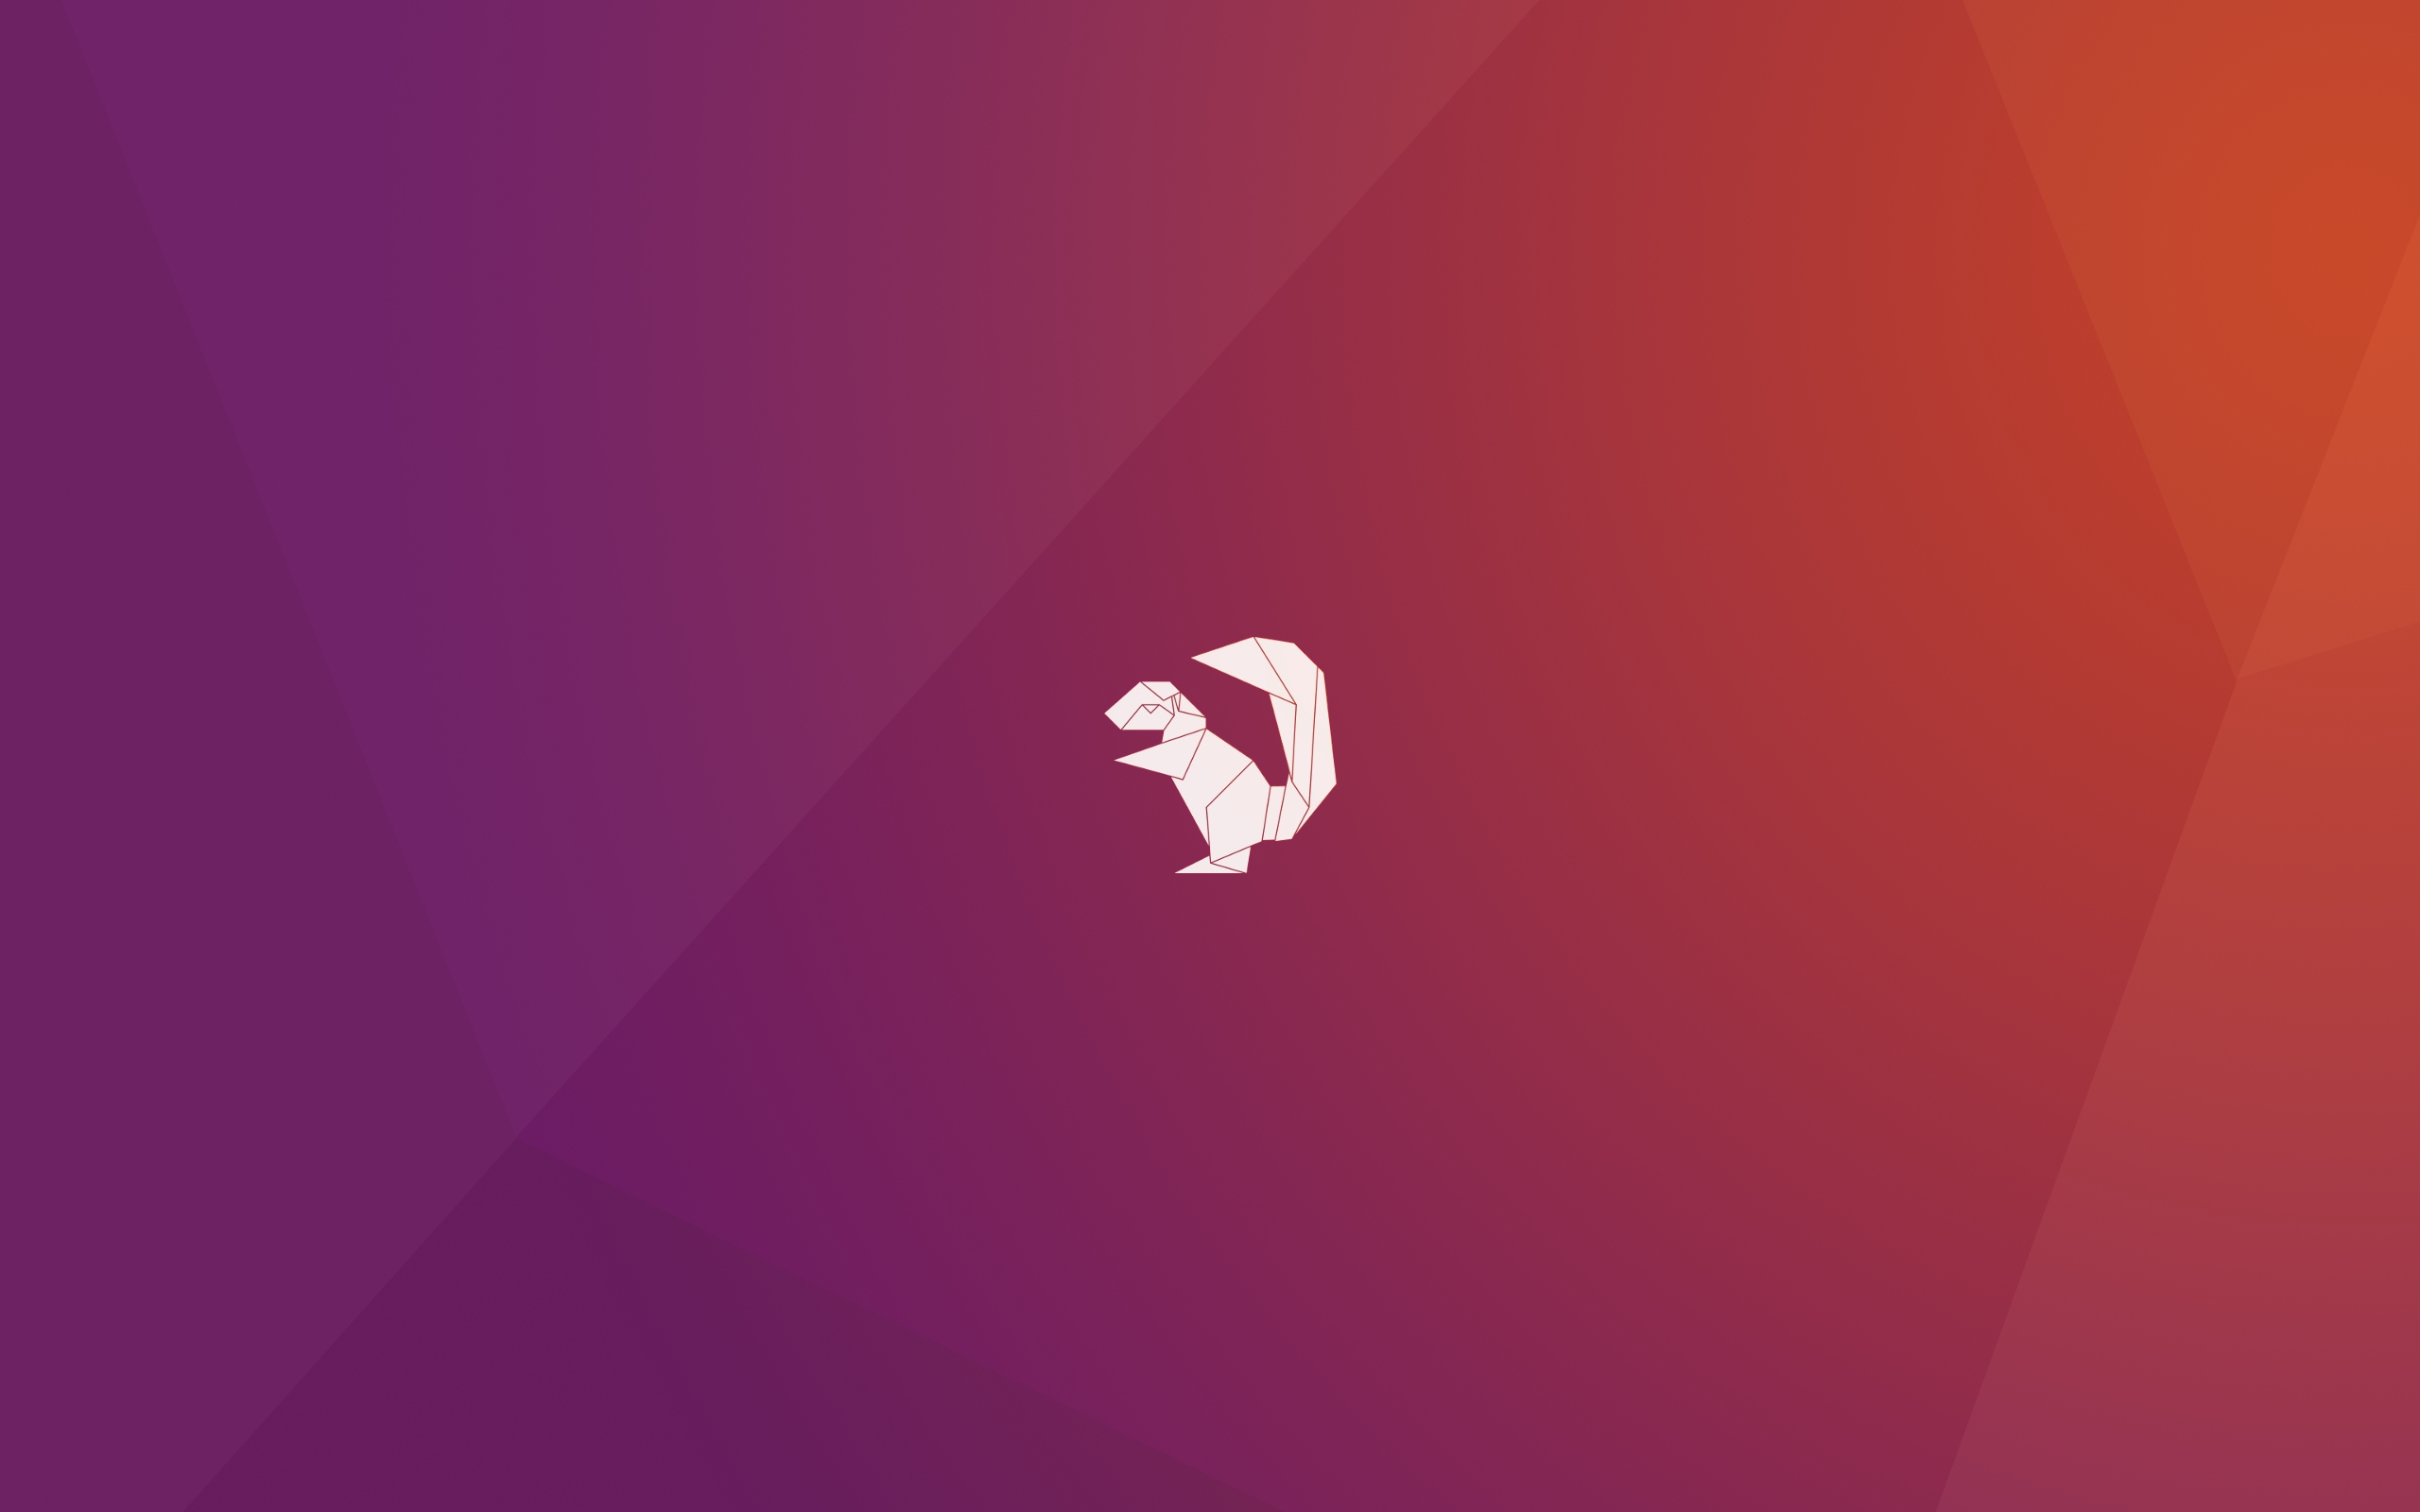 wallpaper ubuntu 16.04